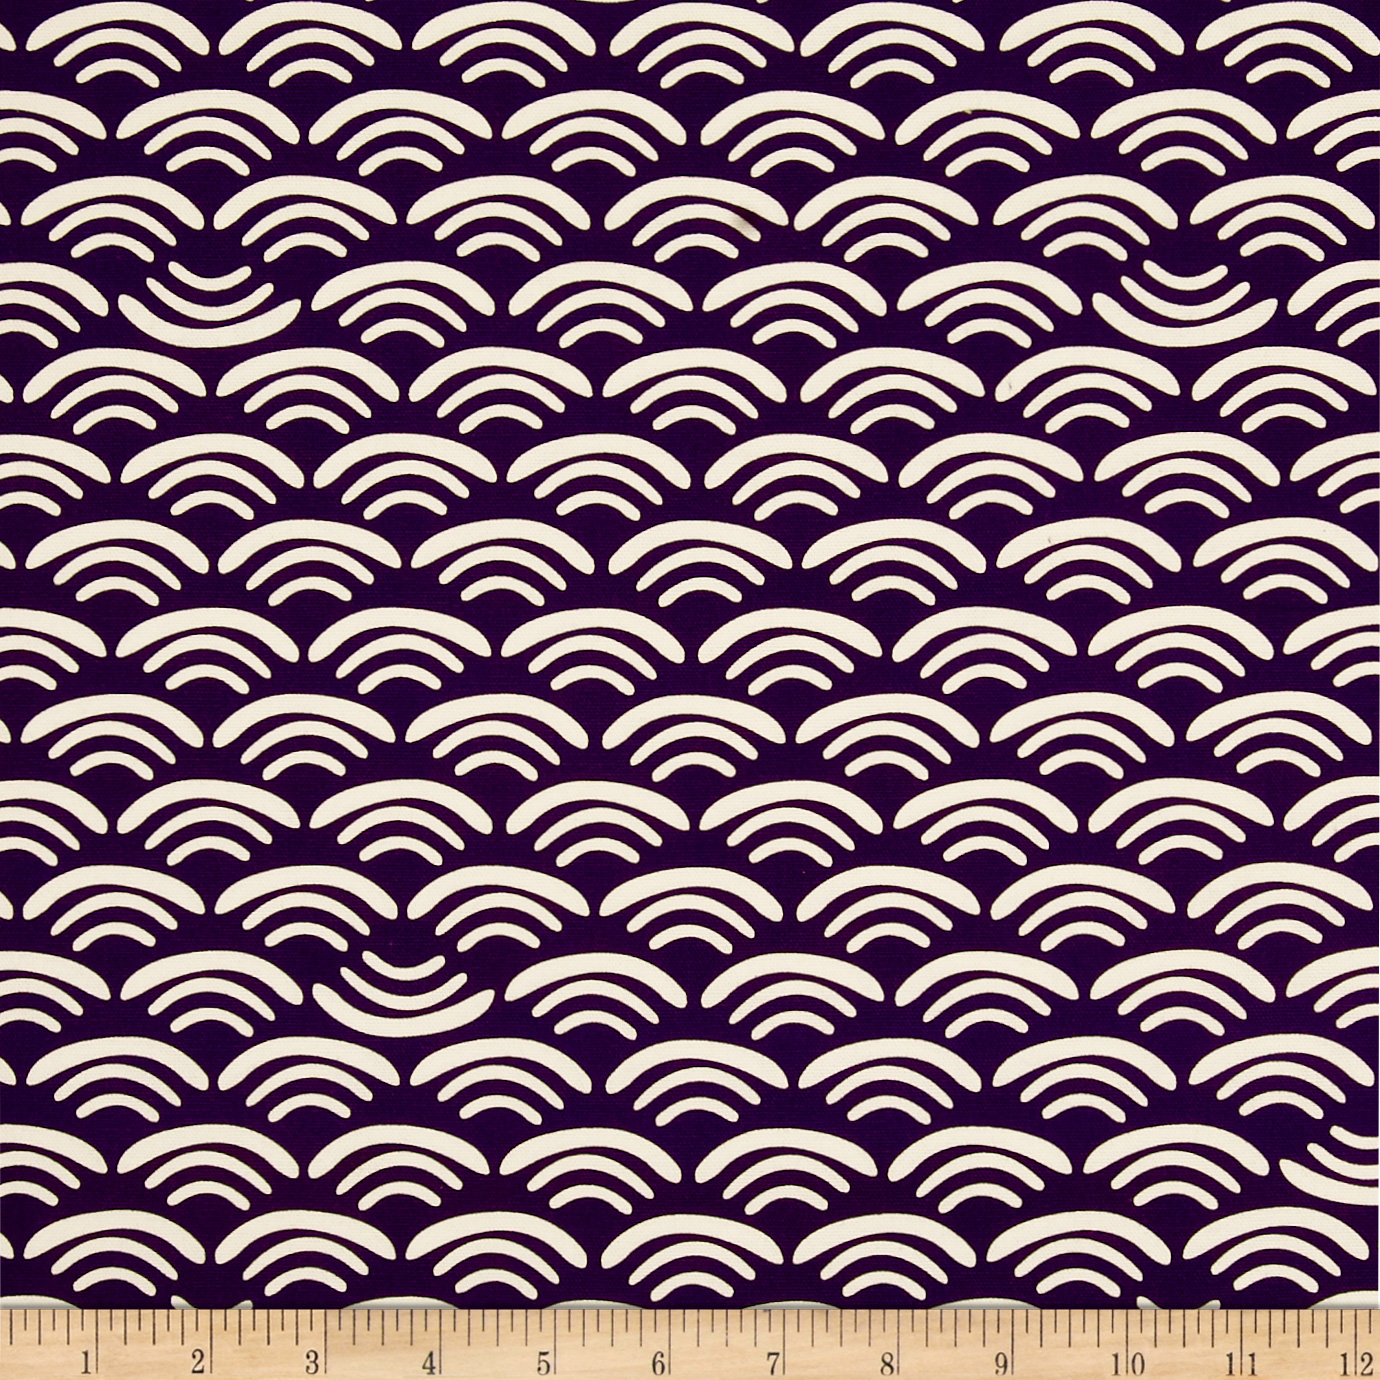 Koi Organic Cotton Canvas Smile & Wave Plum